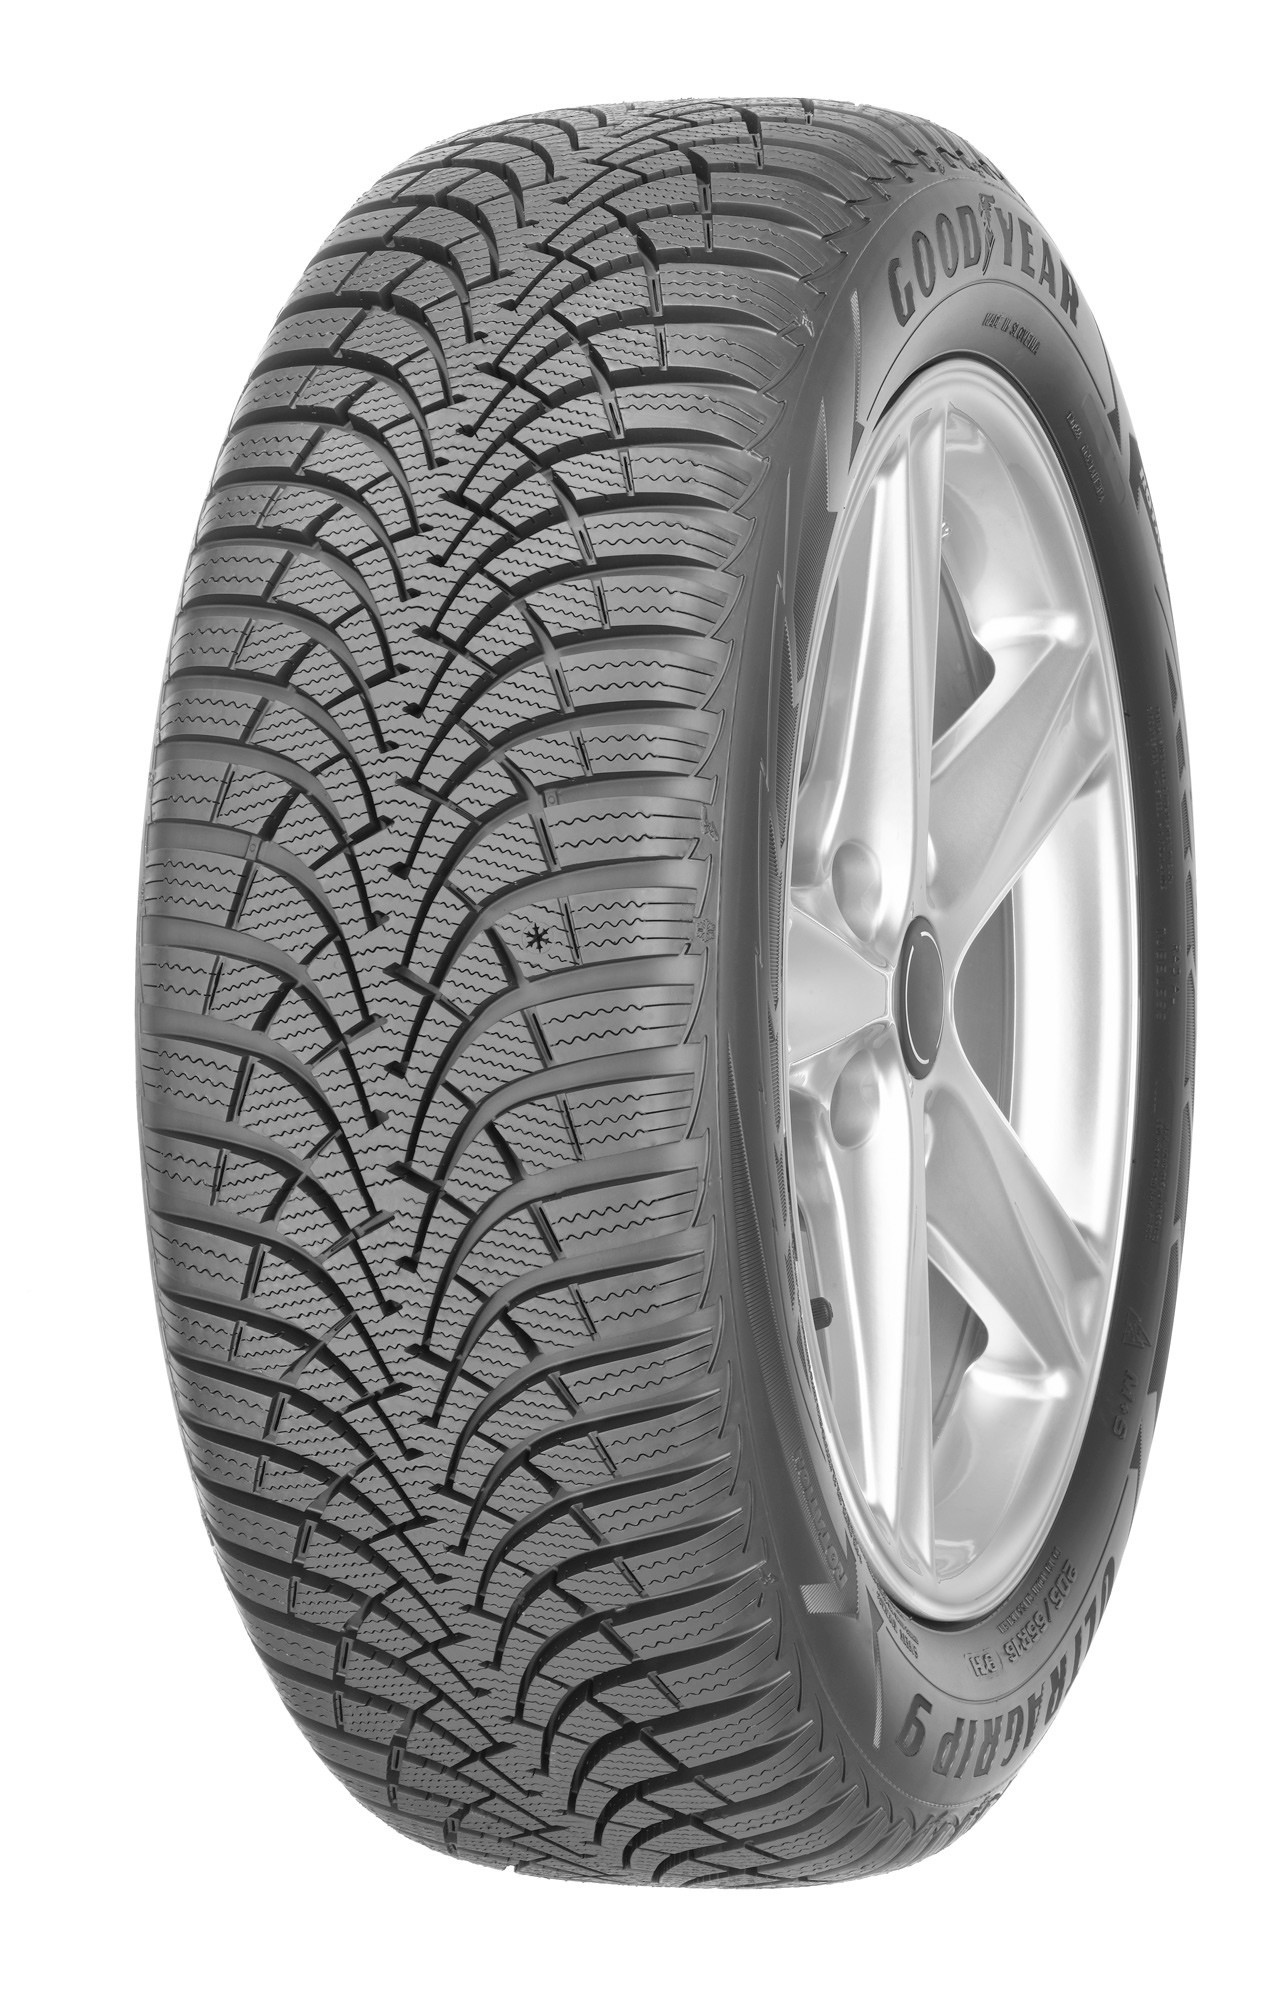 Anvelopa Iarna 165/65R15 81T Goodyear Ultra Grip 9 Ms